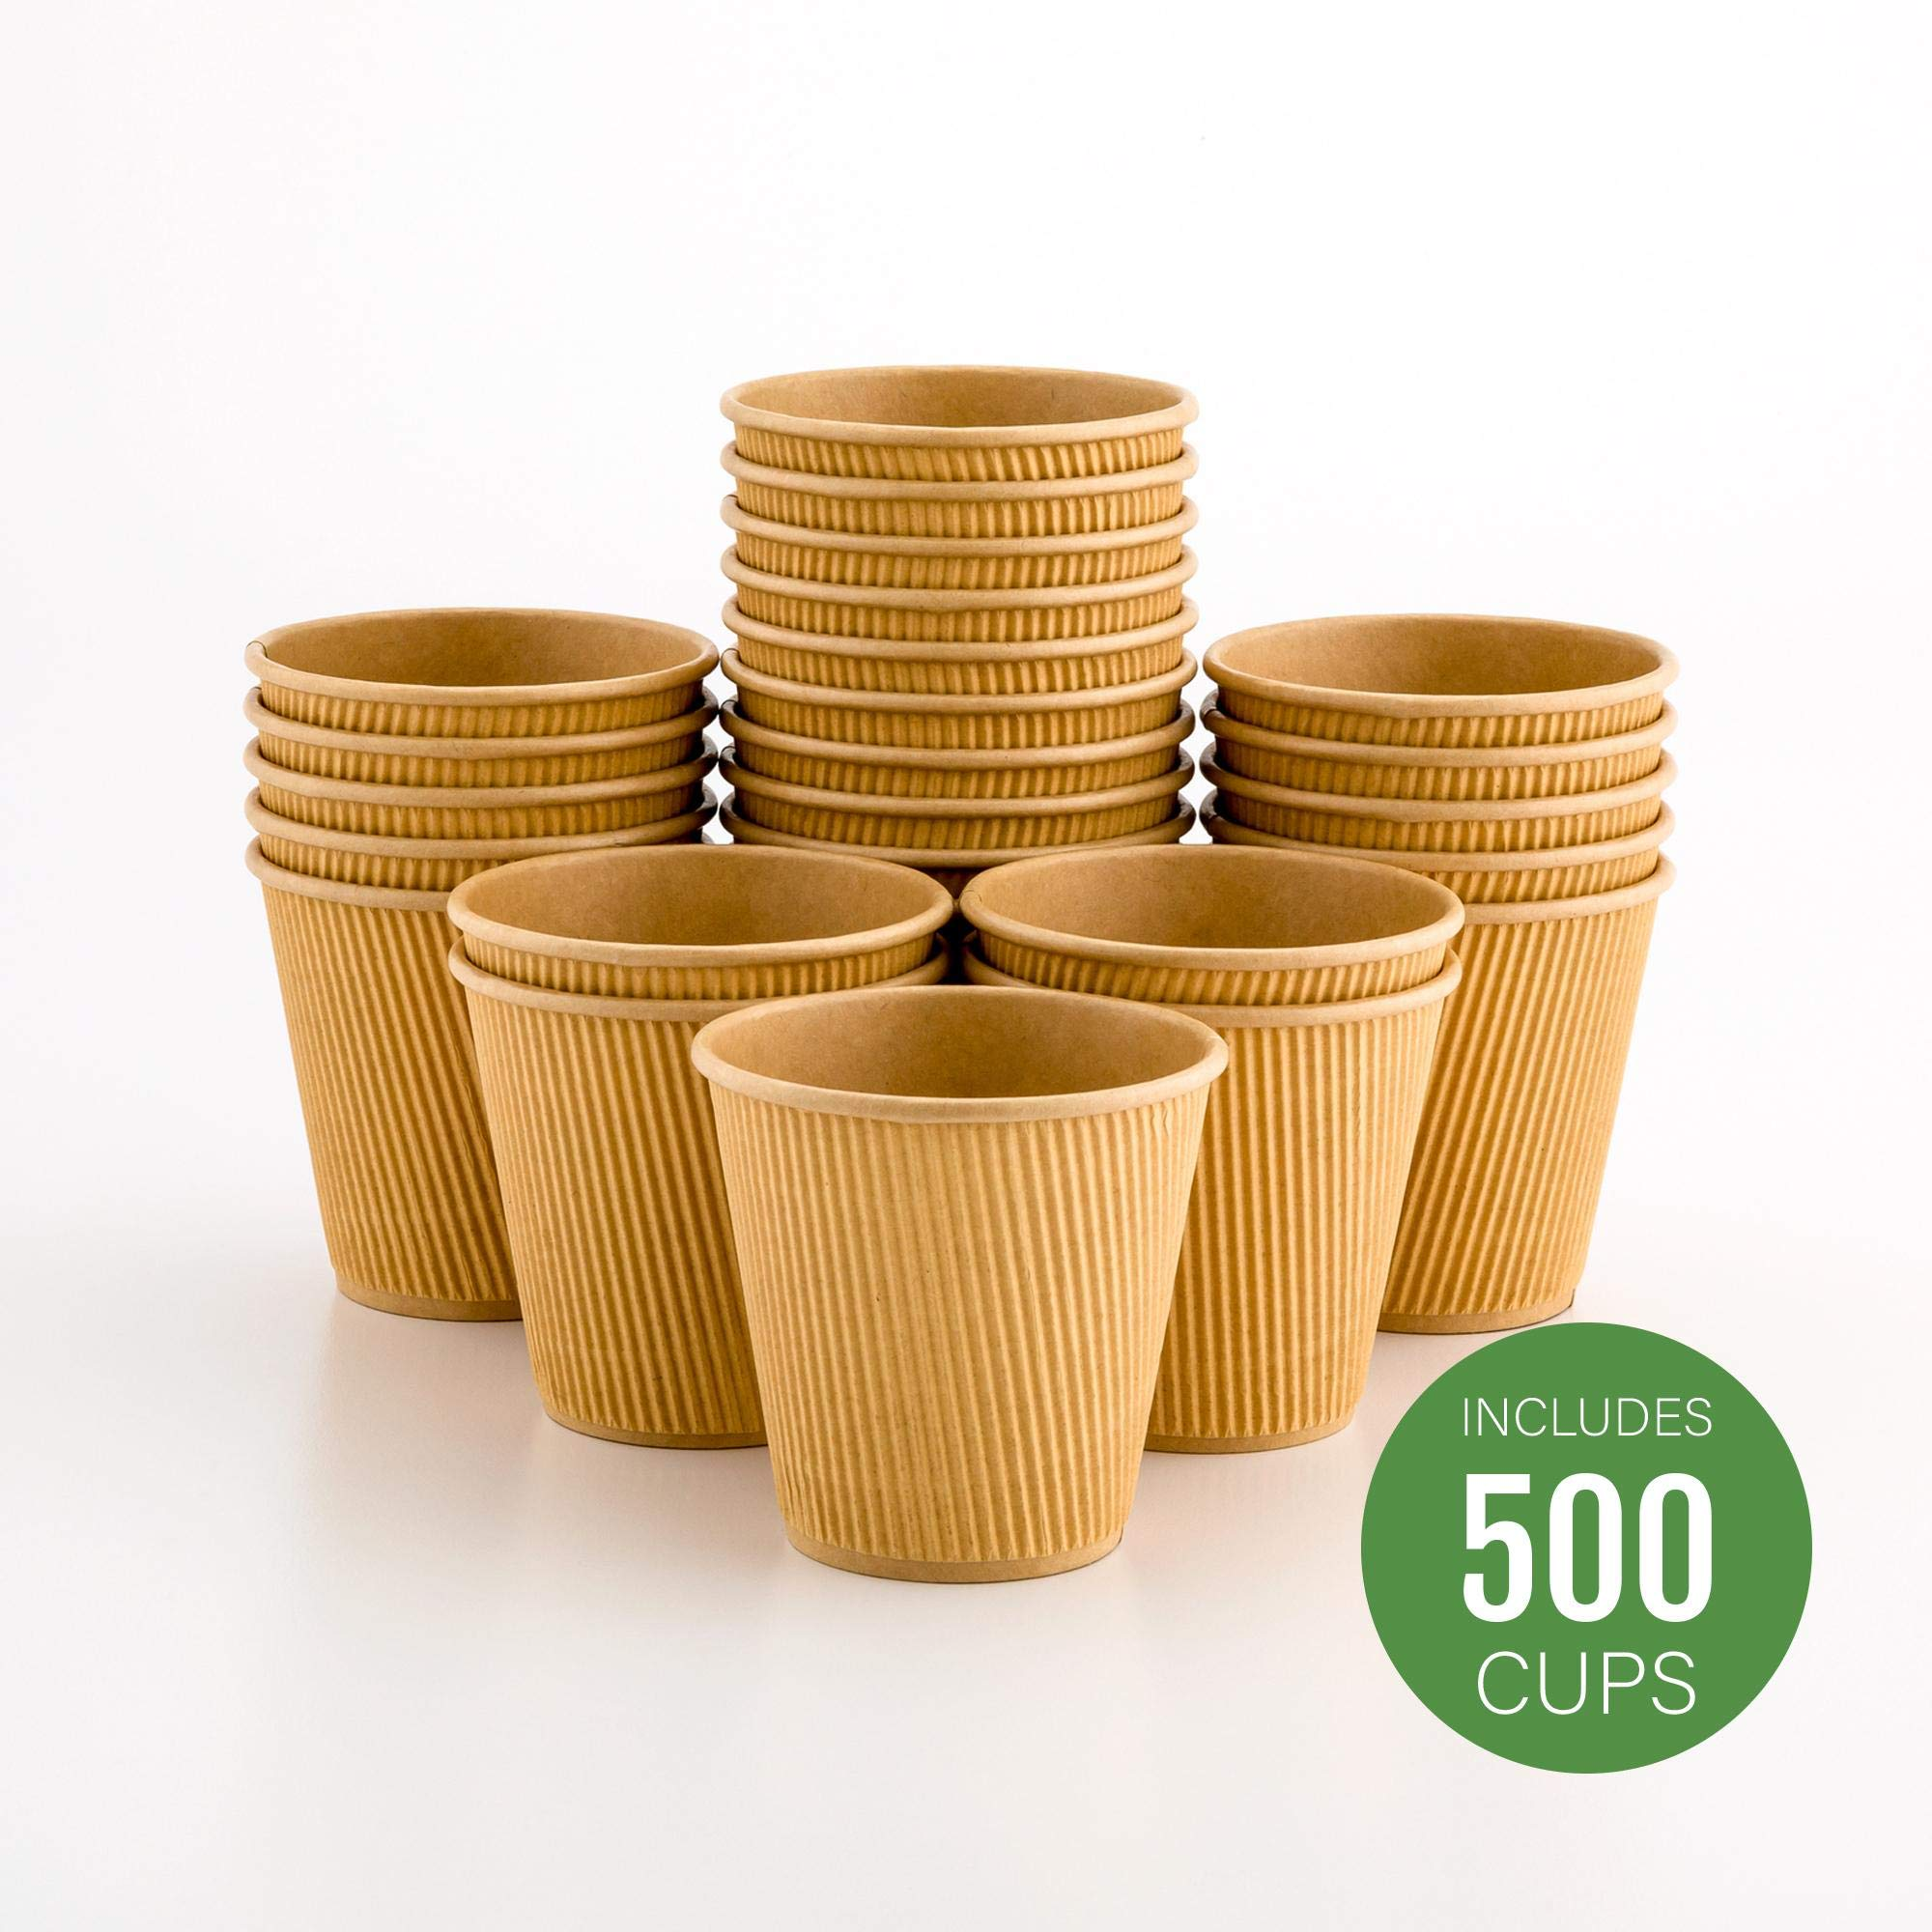 500-CT Disposable Kraft 8-OZ Hot Beverage Cups with Ripple Wall Design: No Need for Sleeves - Perfect for Cafes - Eco-Friendly Recyclable Paper - Insulated - Wholesale Takeout Coffee Cup